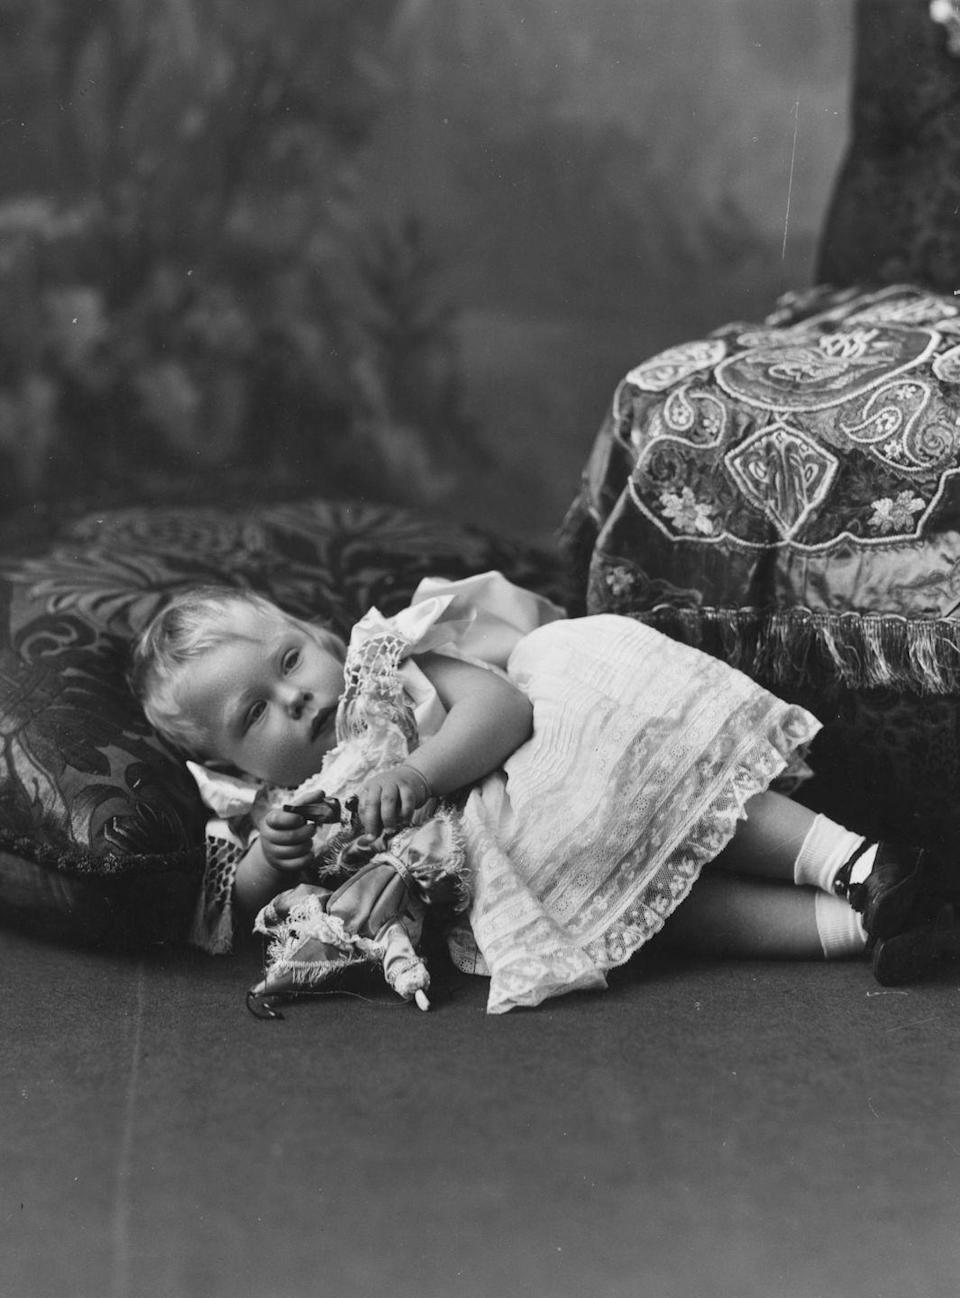 <p>Edward, the eldest son of King George V and Queen Mary, is photographed resting on a pillow at around 6 months old. In 1936, Edward officially became King Edward VIII but abdicated the throne in less than one year so he could marry American divorcée Wallis Simpson. Edward's brother, King George VI, took over the throne, while Edward became the Duke of Windsor.</p>